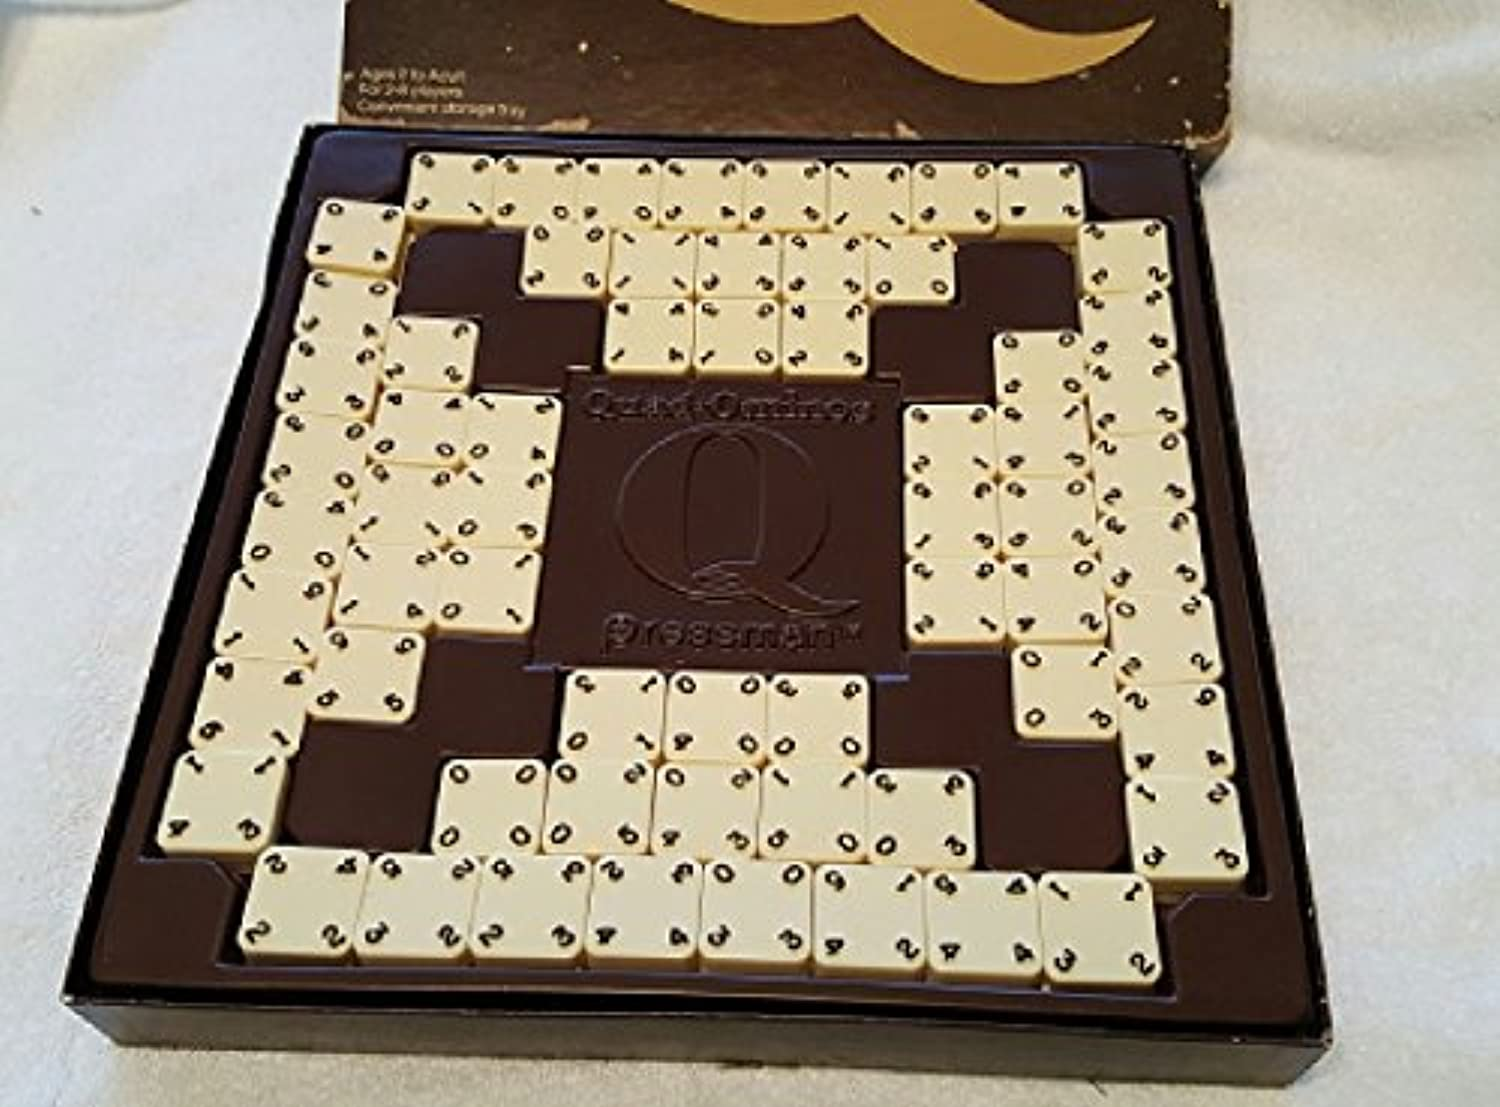 Quad-ominos the Ultimate Domino Game 1978 Edition by Pressman Toy